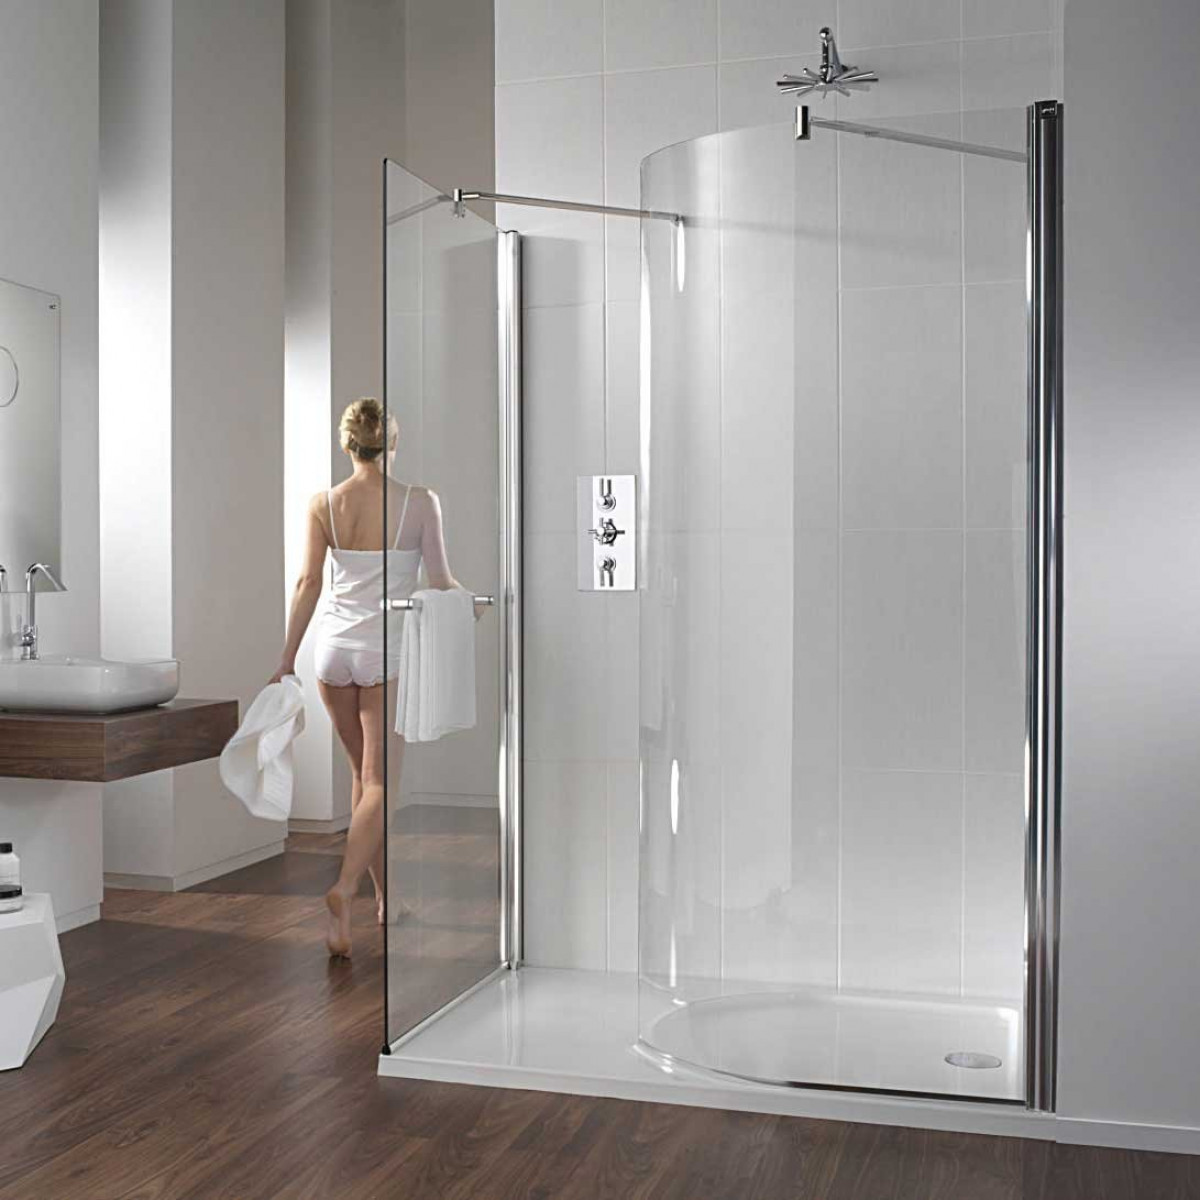 Twyford Hydr8 Walk in Curve Shower Enclosure | H80920CP